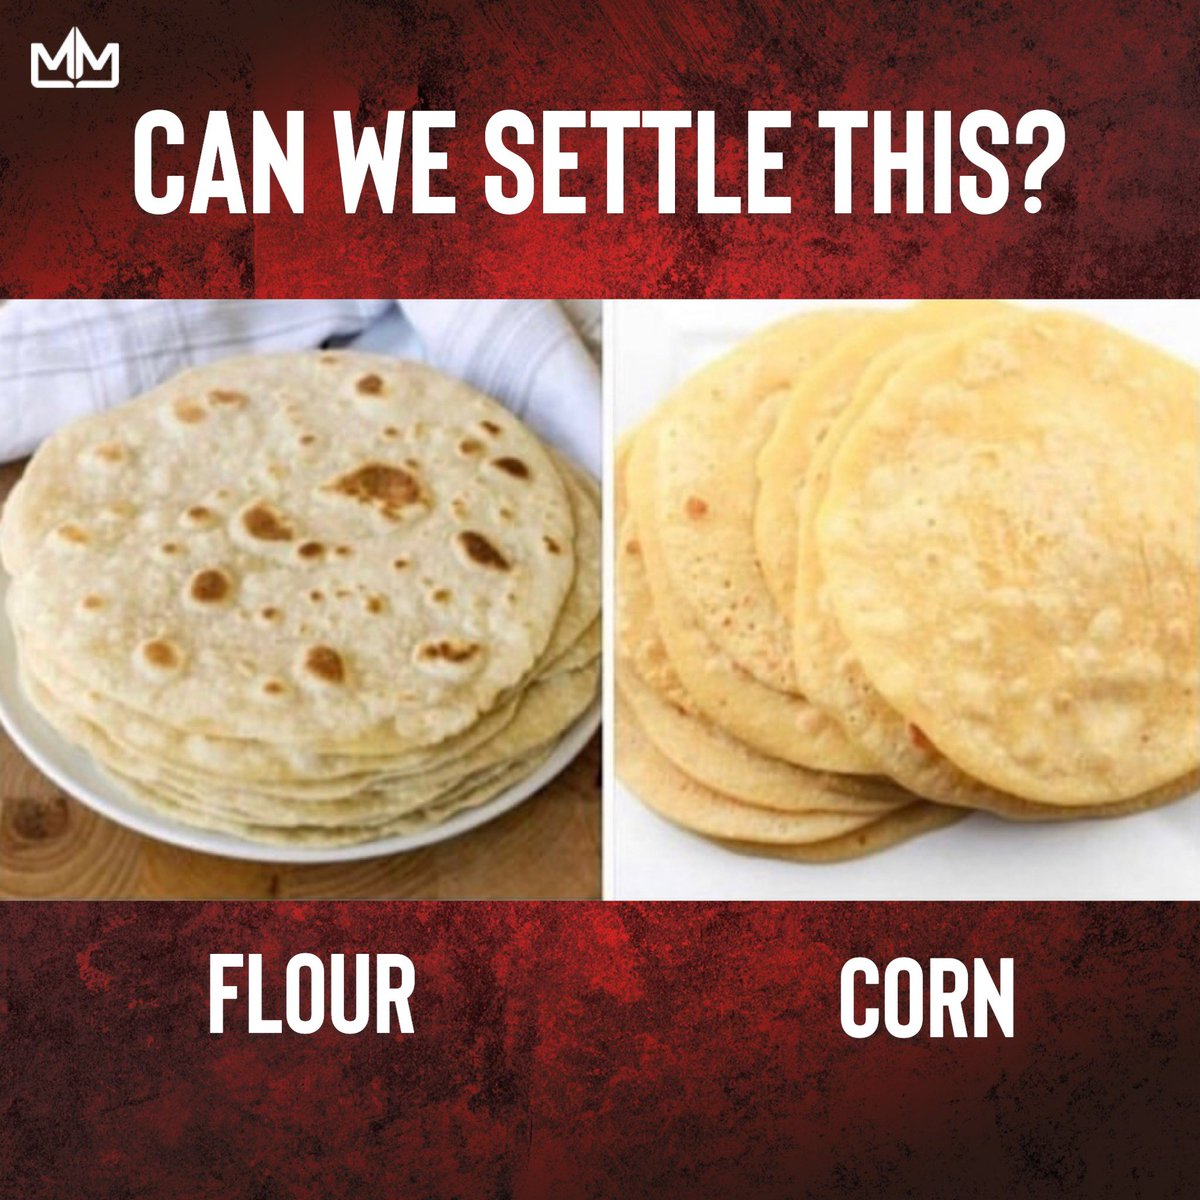 My Mixtapez On Twitter Alright Let S Settle This Migos Flour Or Corn Tortillas